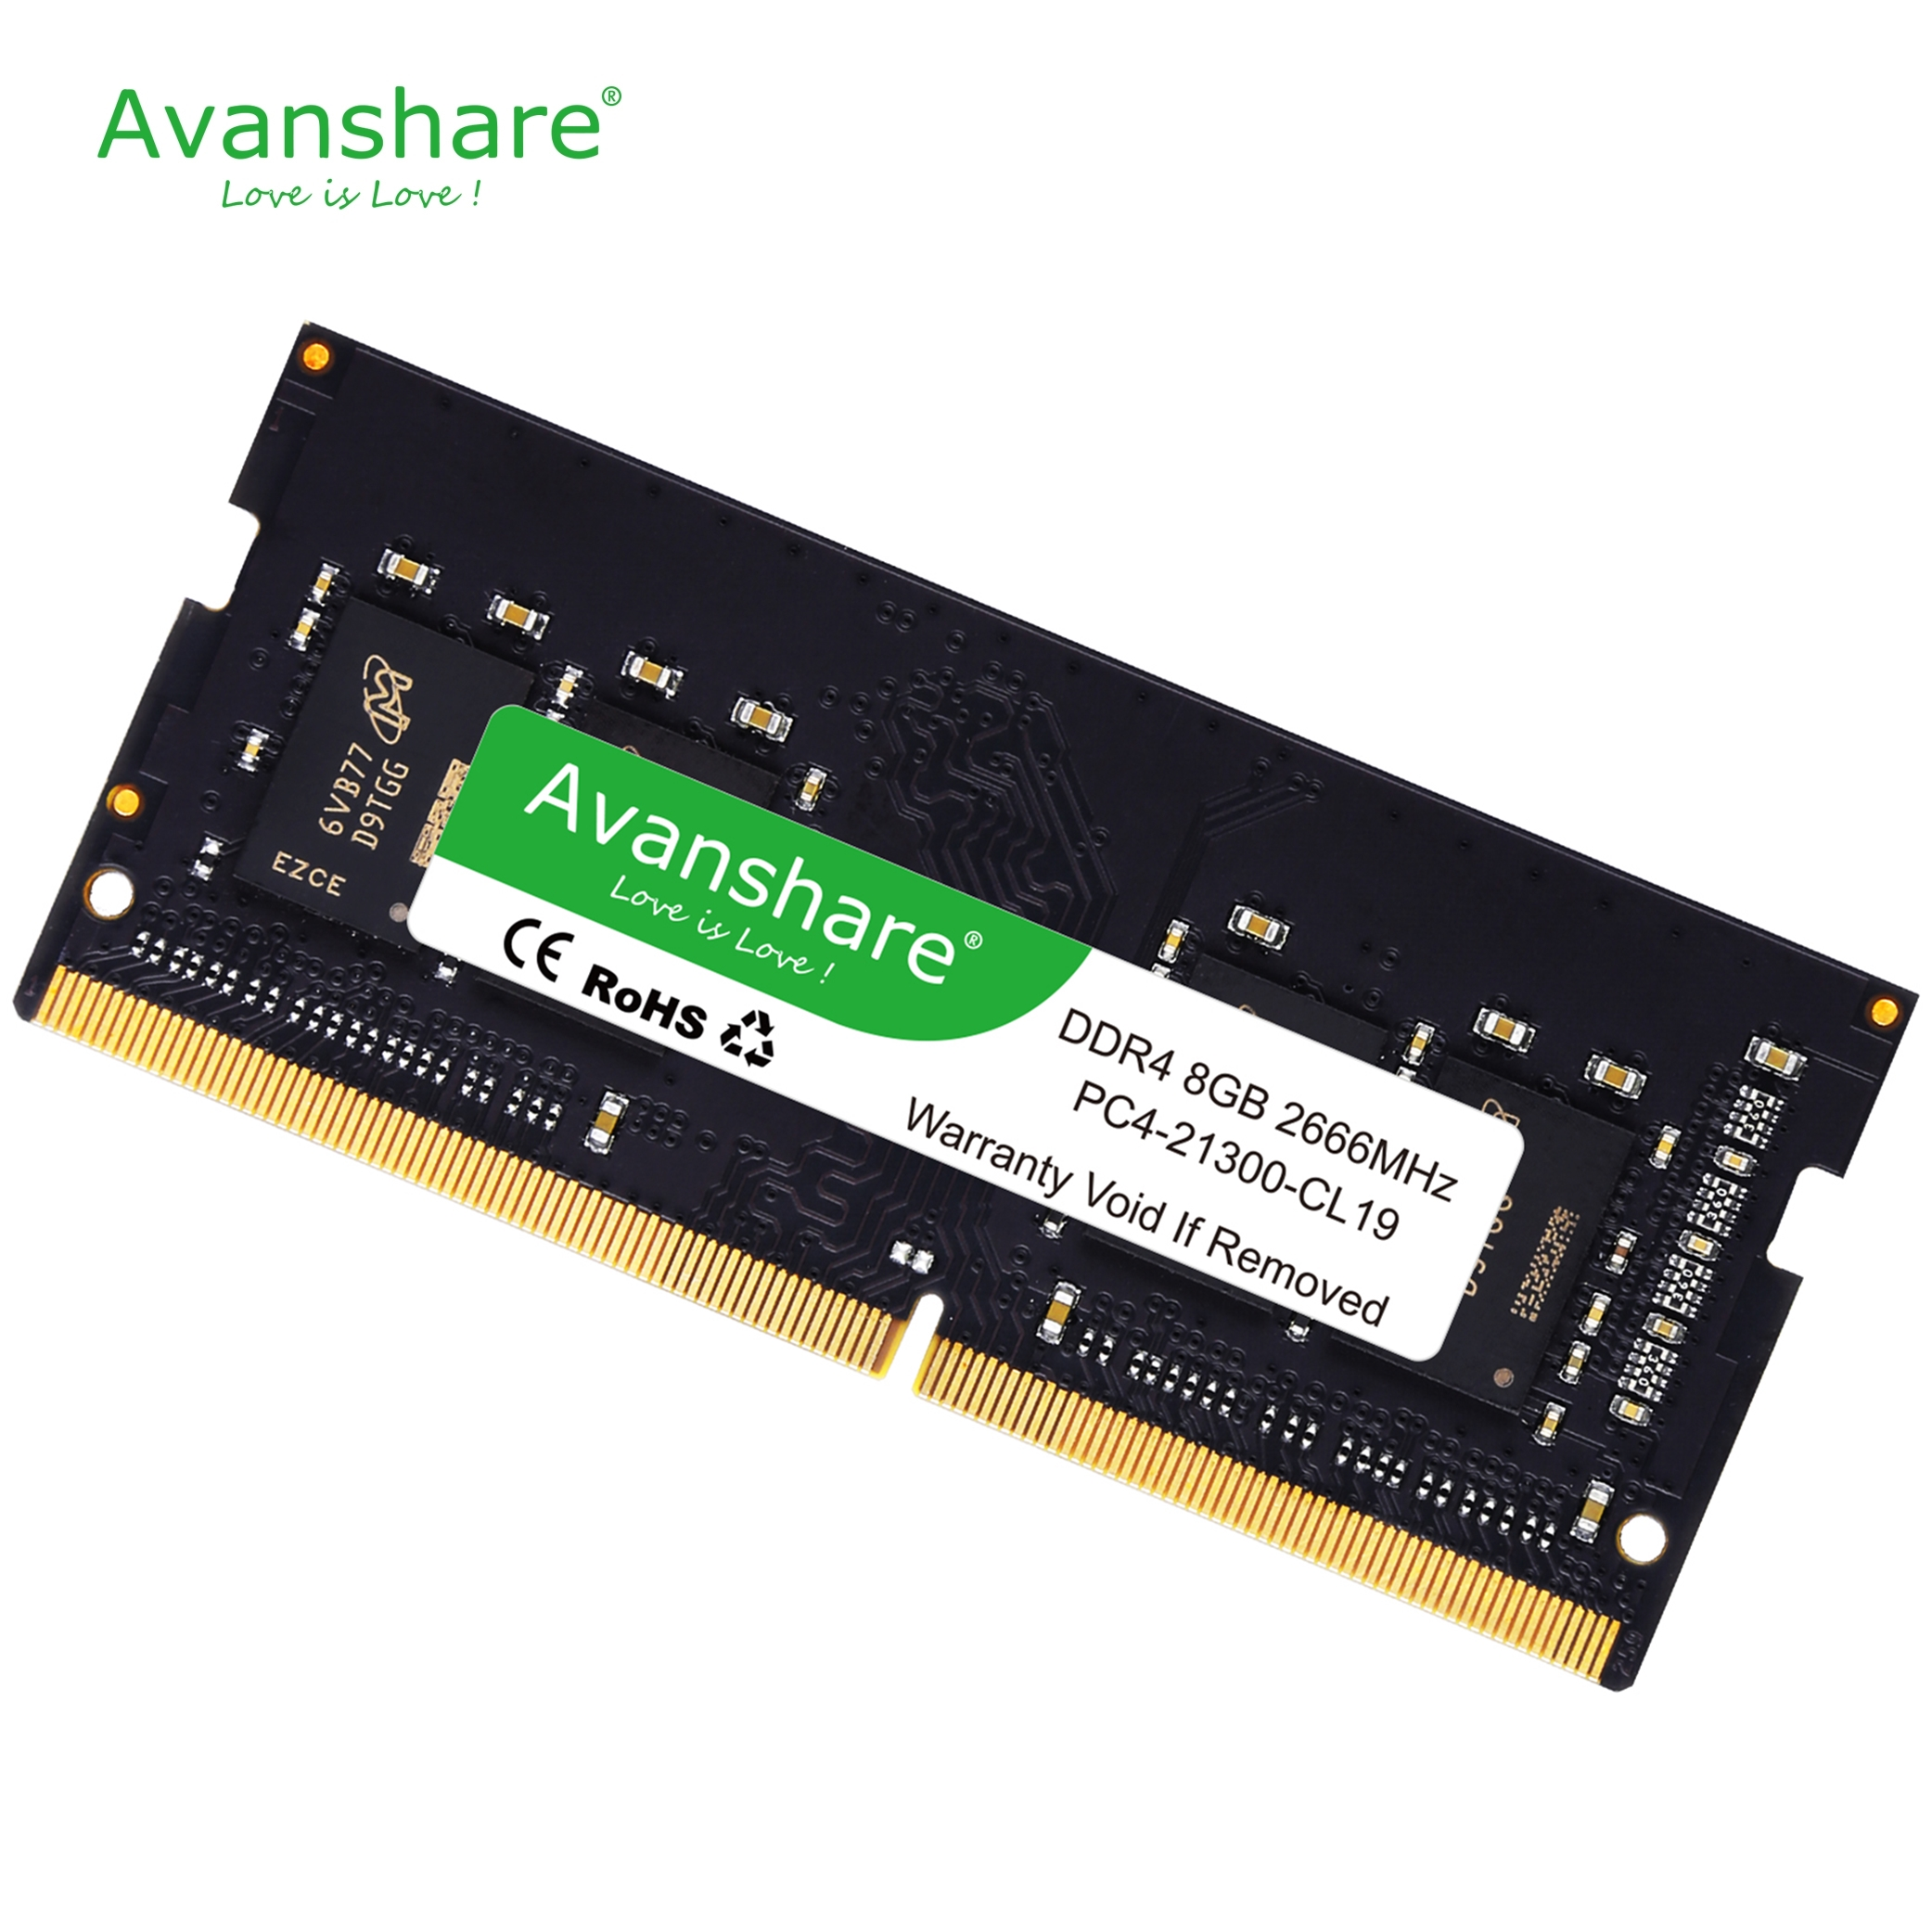 Avanshare ddr4 ram 8GB 4GB 16GB 2400MHz 2666 DIMM Support de mémoire d'ordinateur portable carte mère ddr4